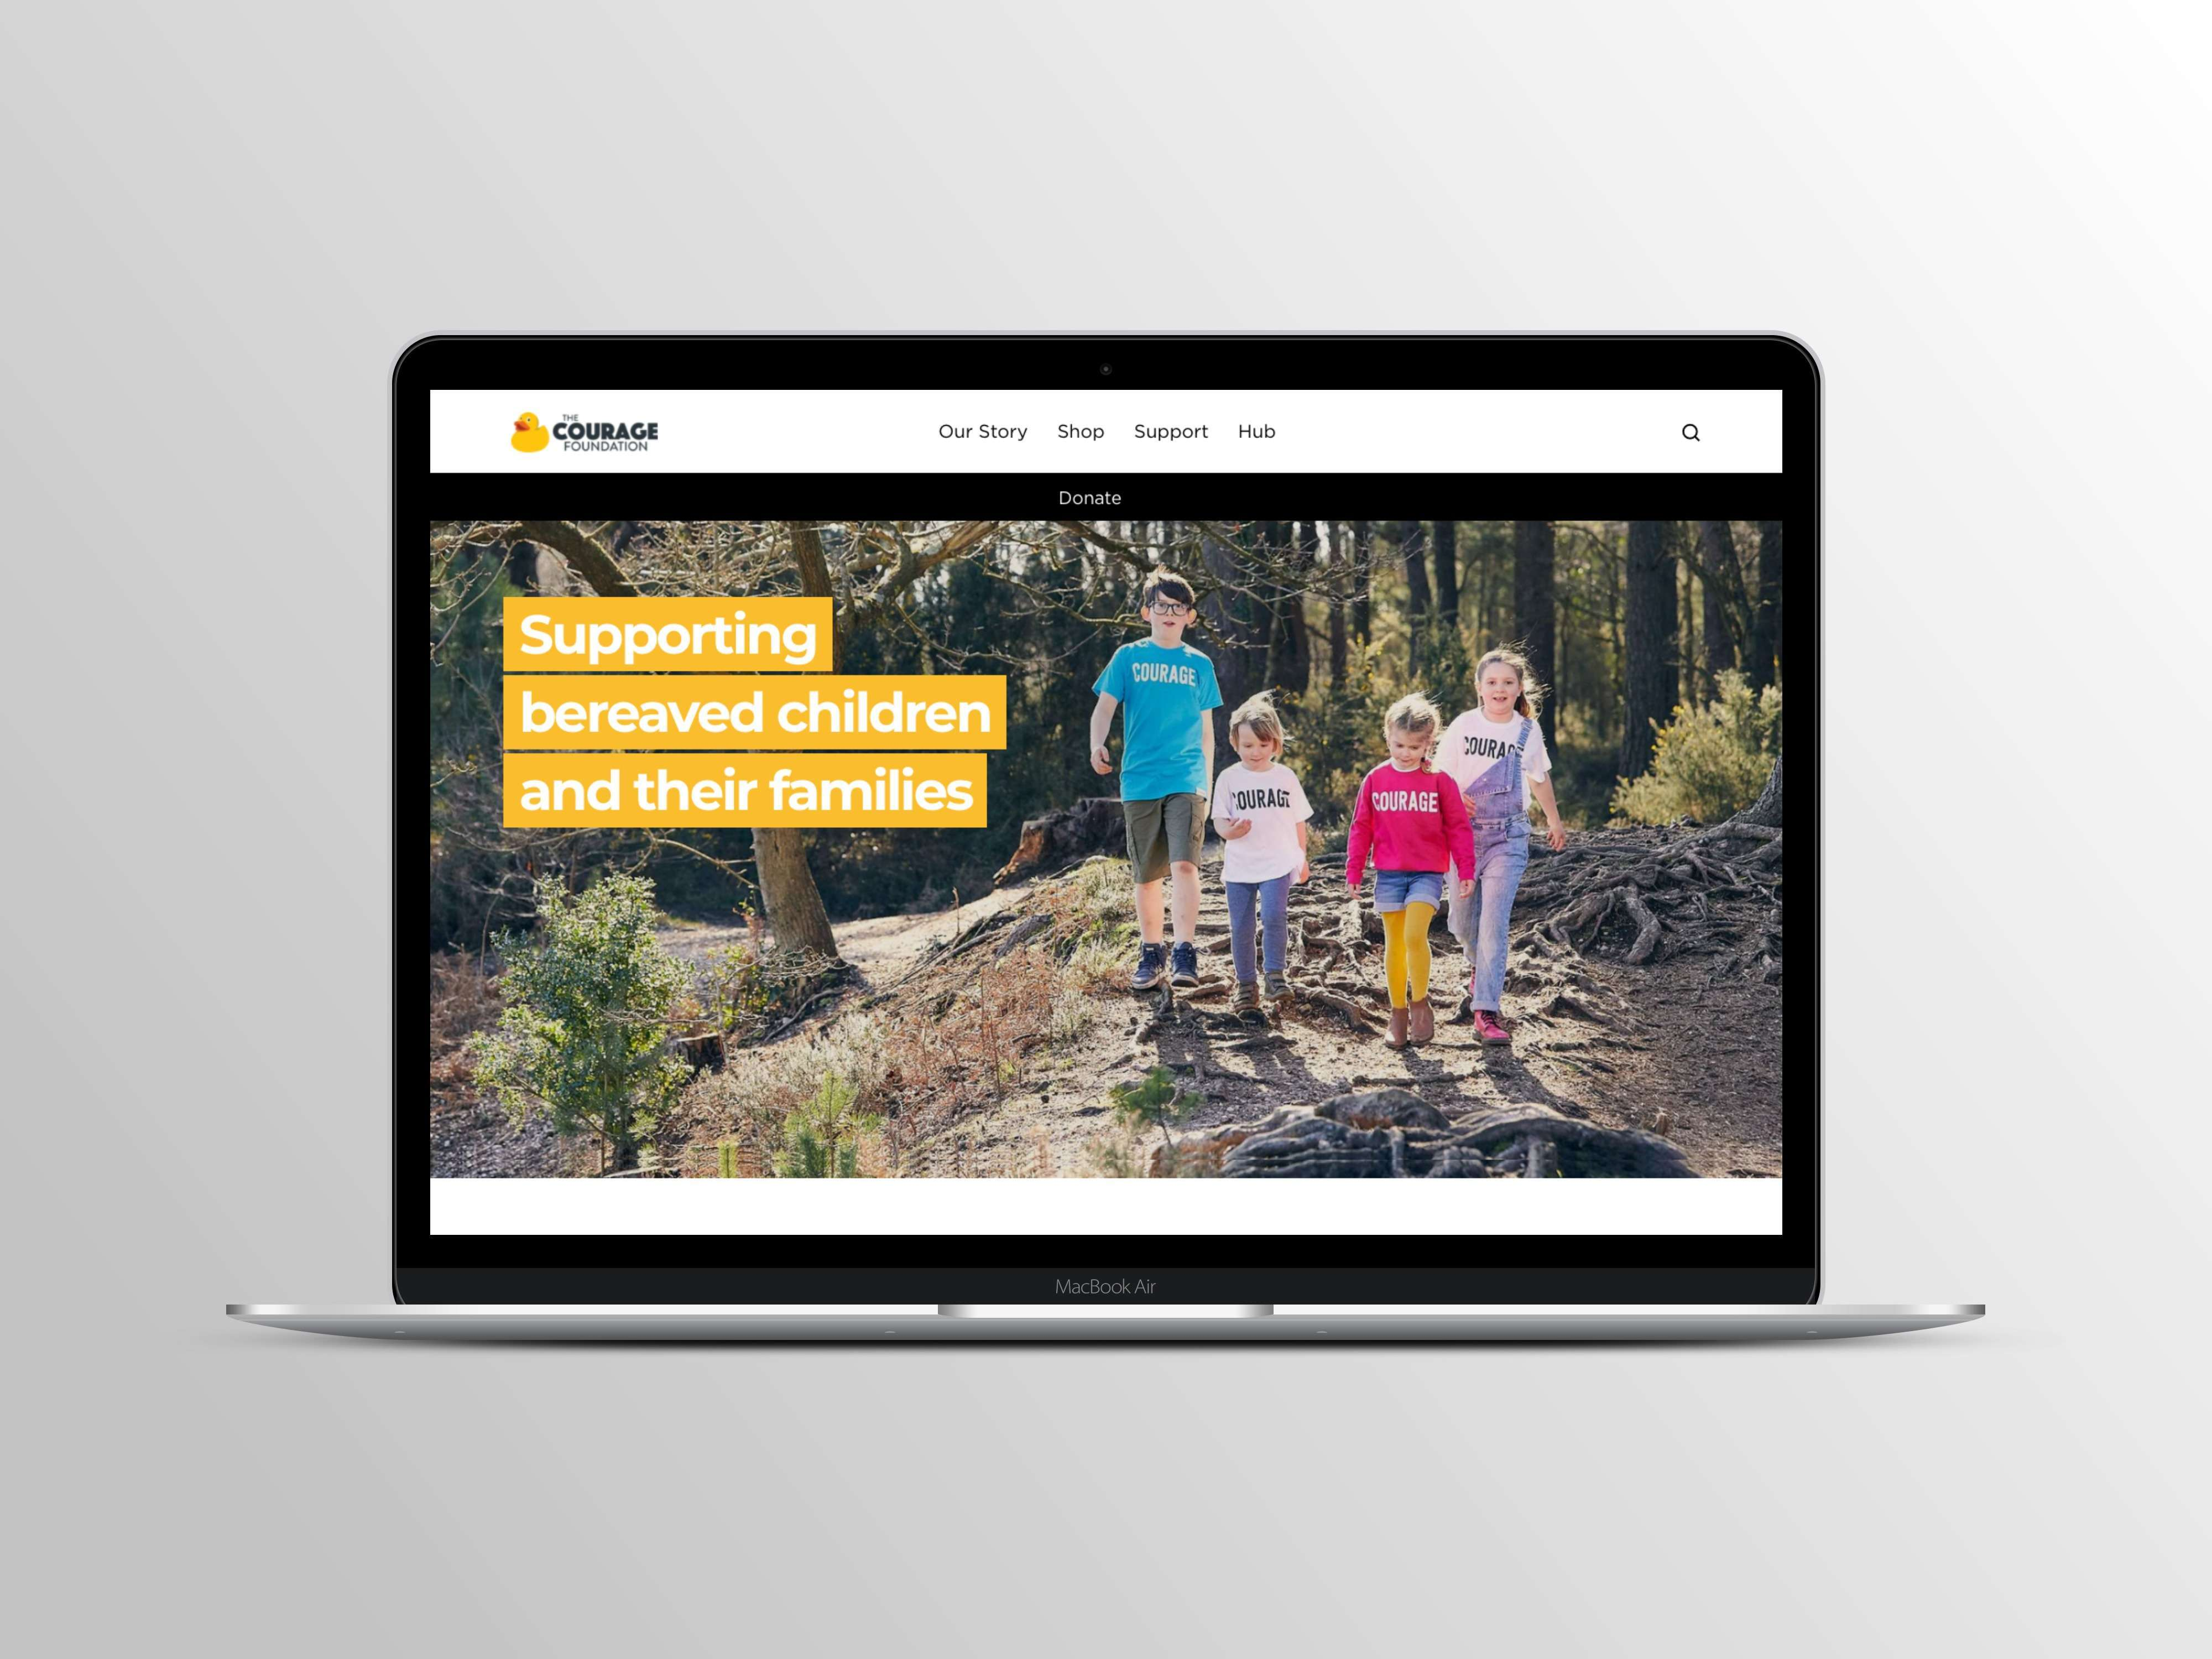 The Courage Foundation's new Shopify site is live!